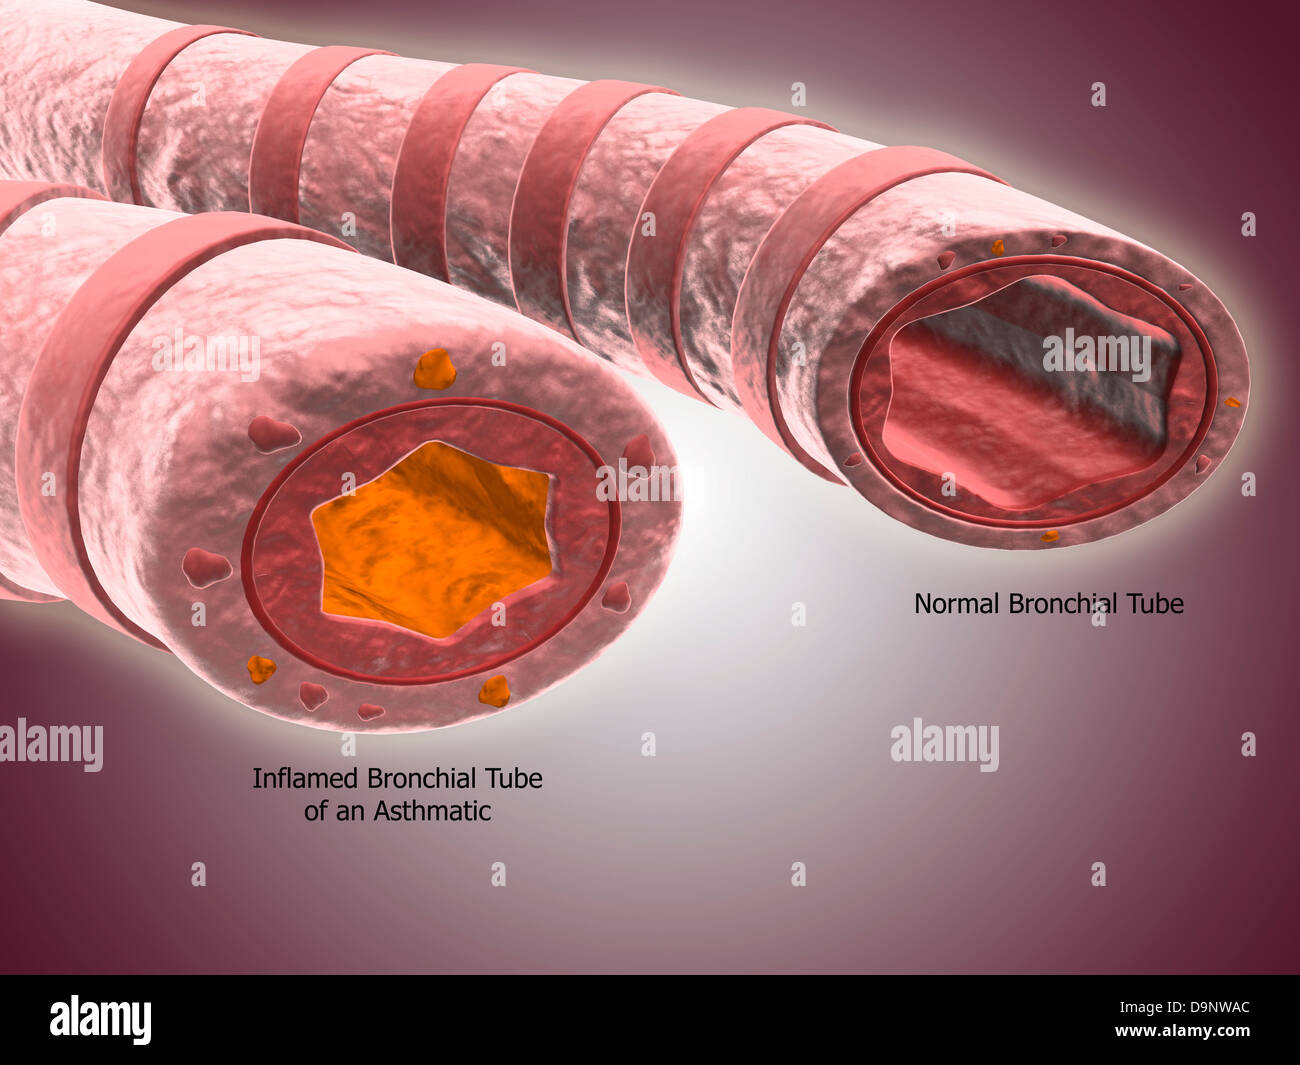 Trachea cross-section showing comparison of normal and asthmatic bronchiole. - Stock Image